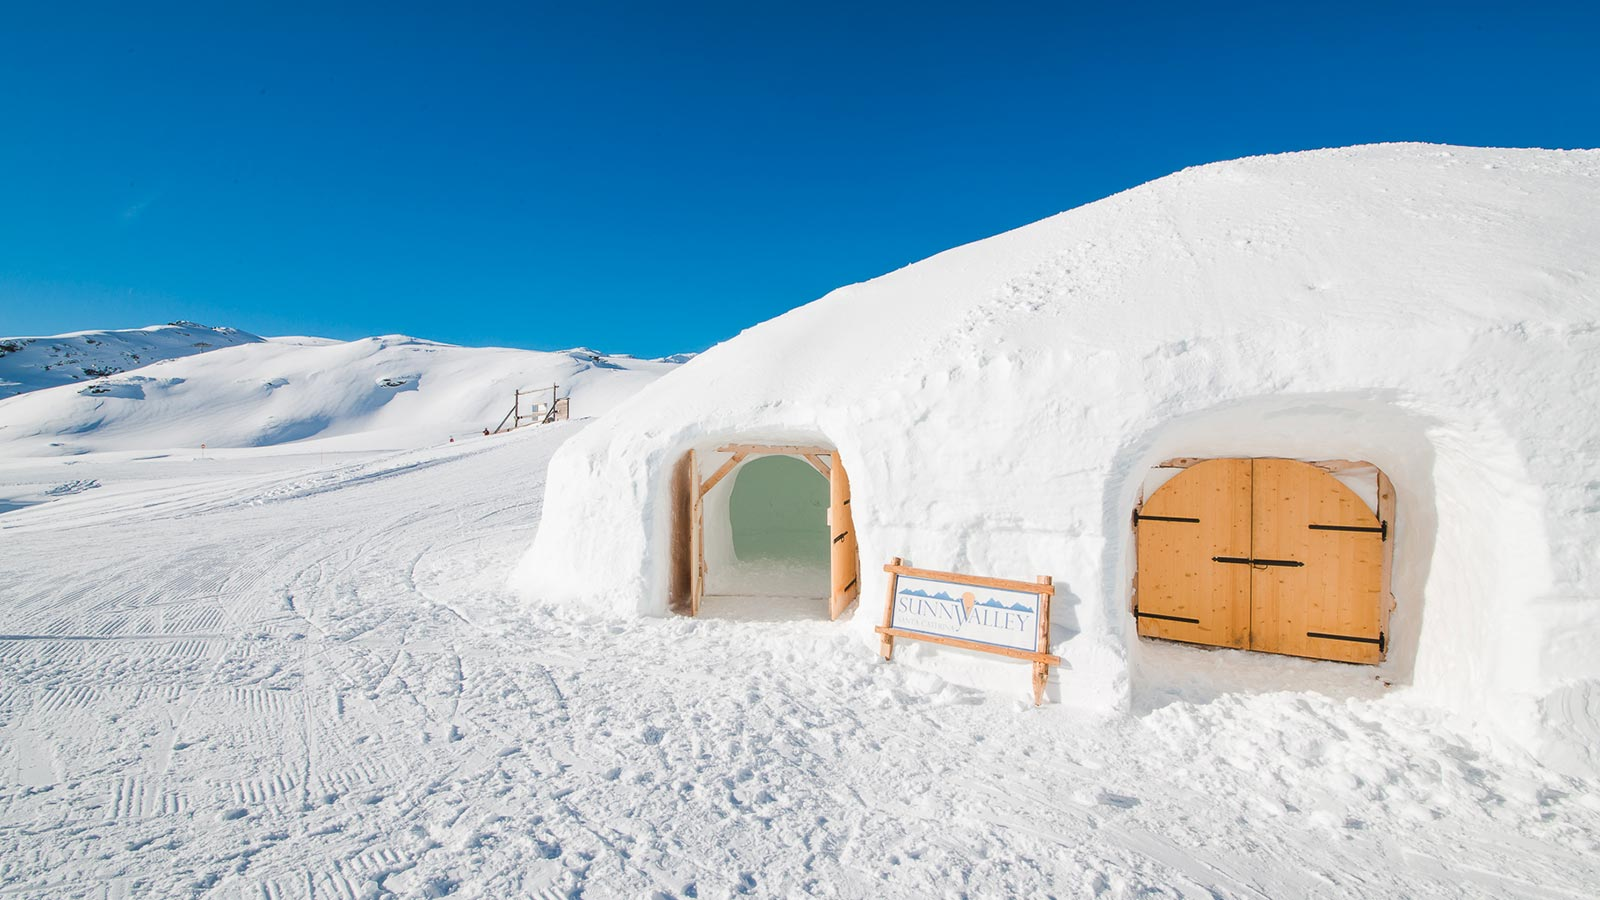 03-sunnyvalley-igloo-outdoor-snow-bar-relax